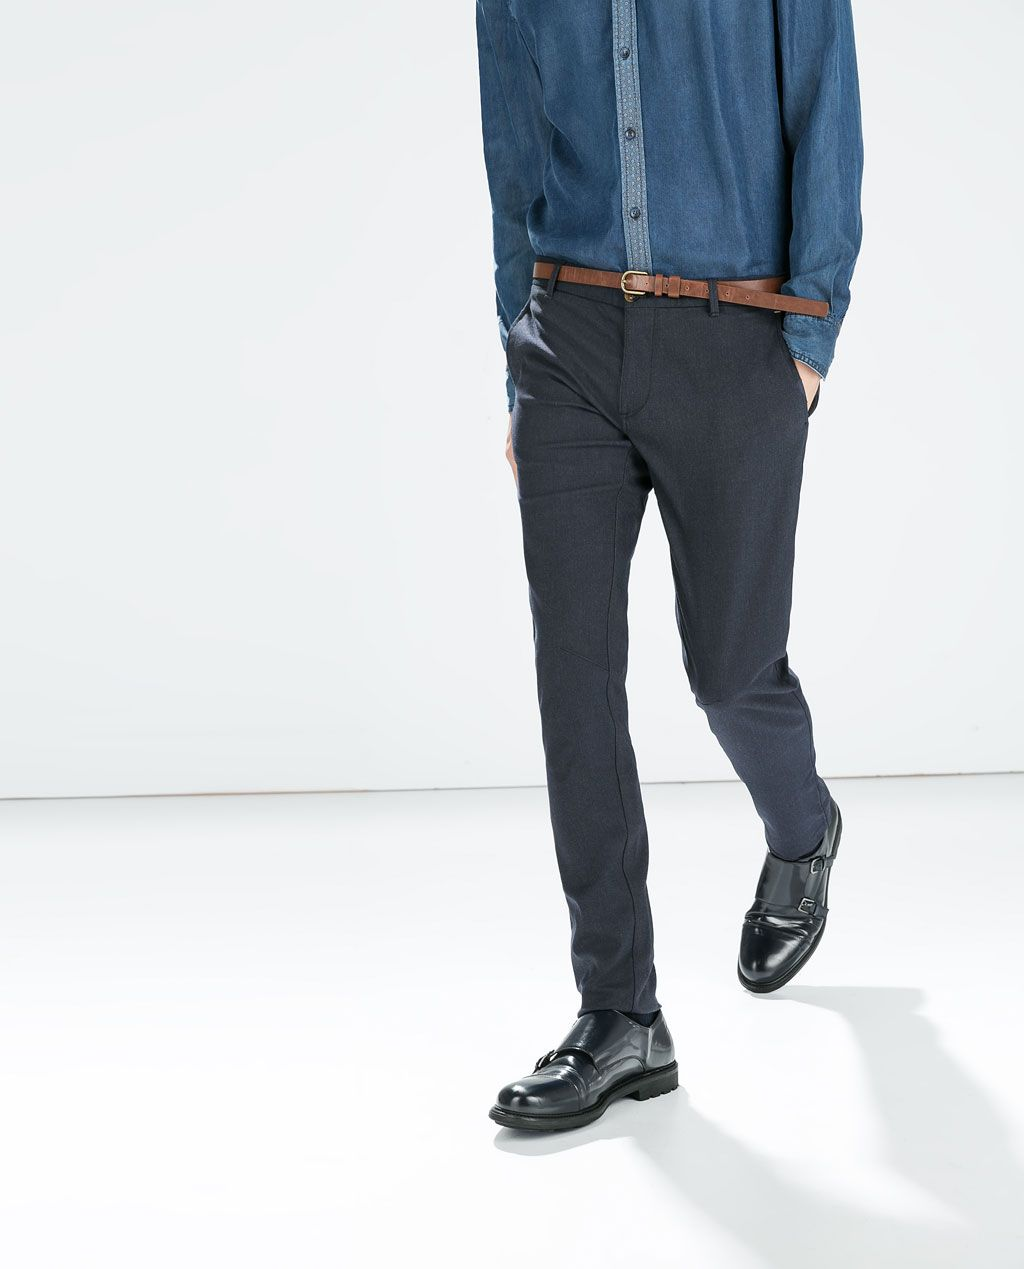 ZARA - MAN - DENIM LOOK TROUSERS WITH BELT